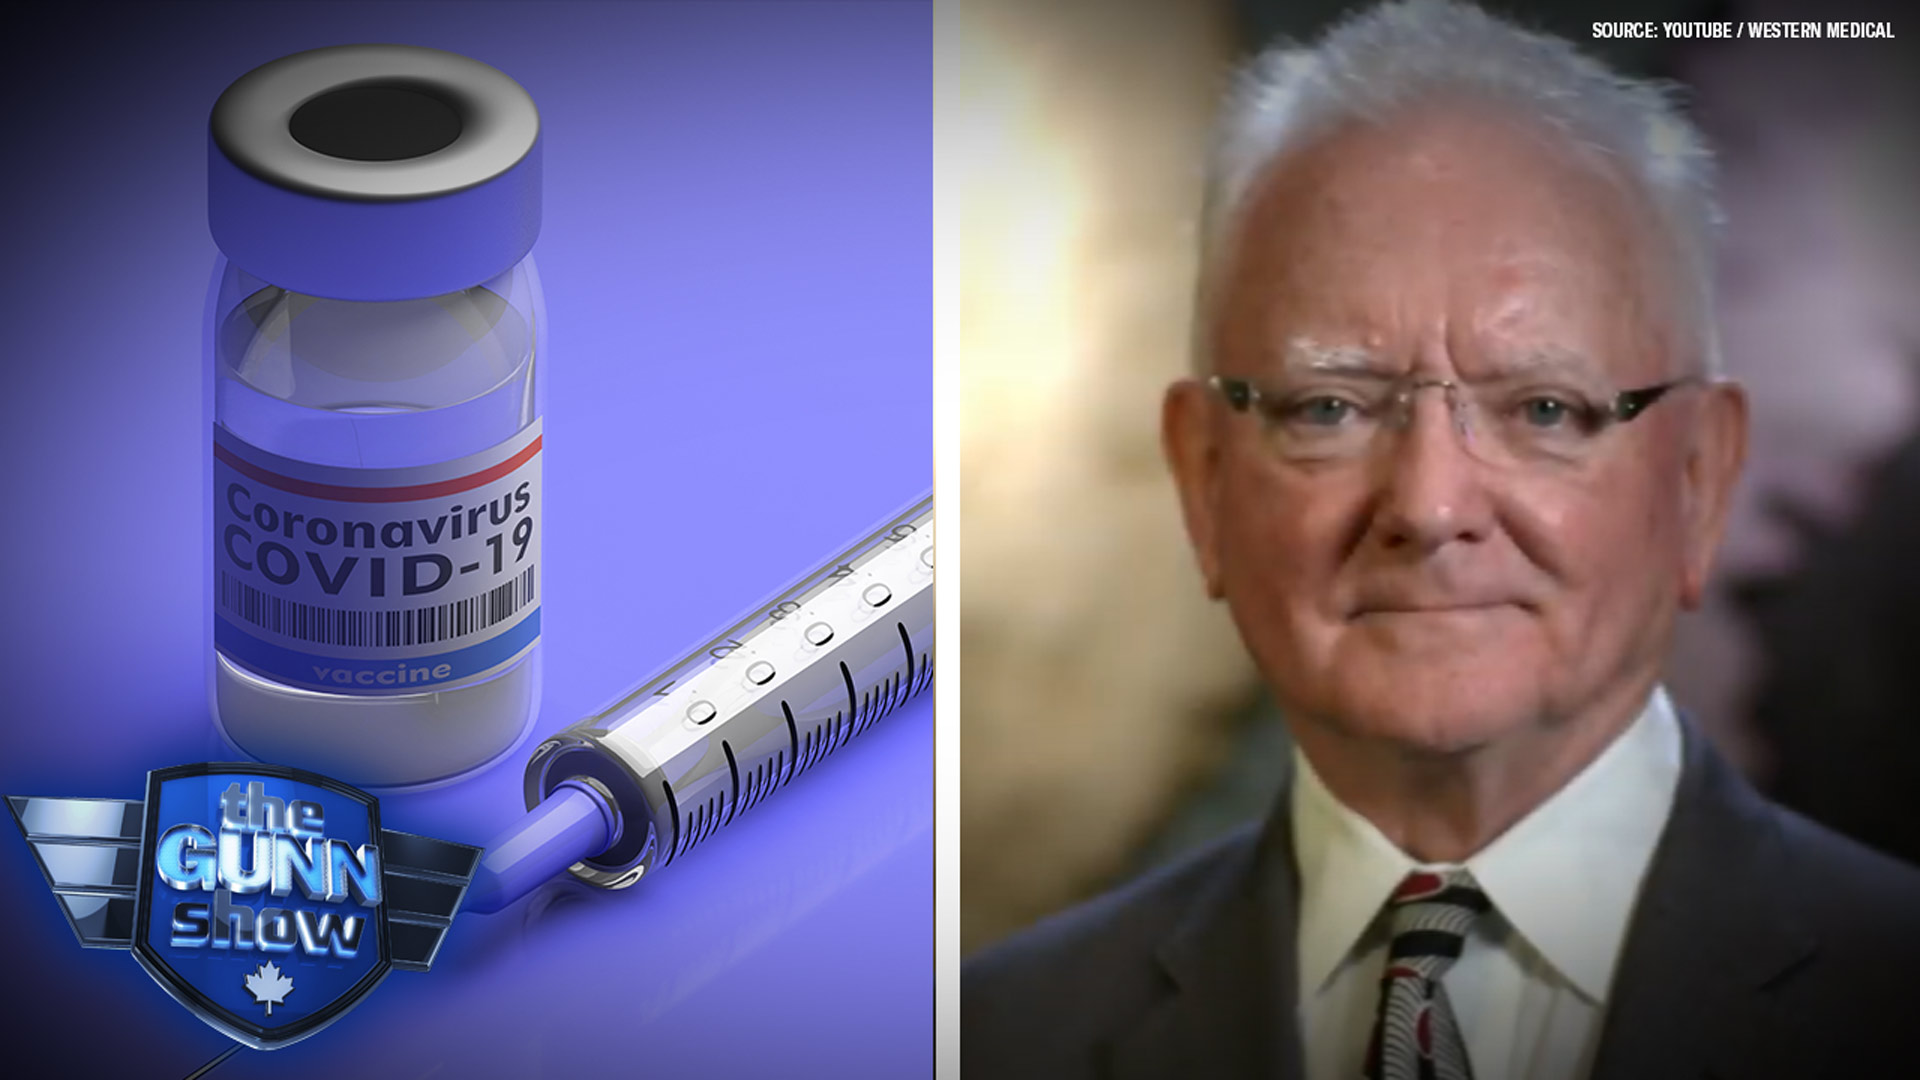 Oxford-educated pathologist Dr. Roger Hodkinson on rapidly changing vaccine advice